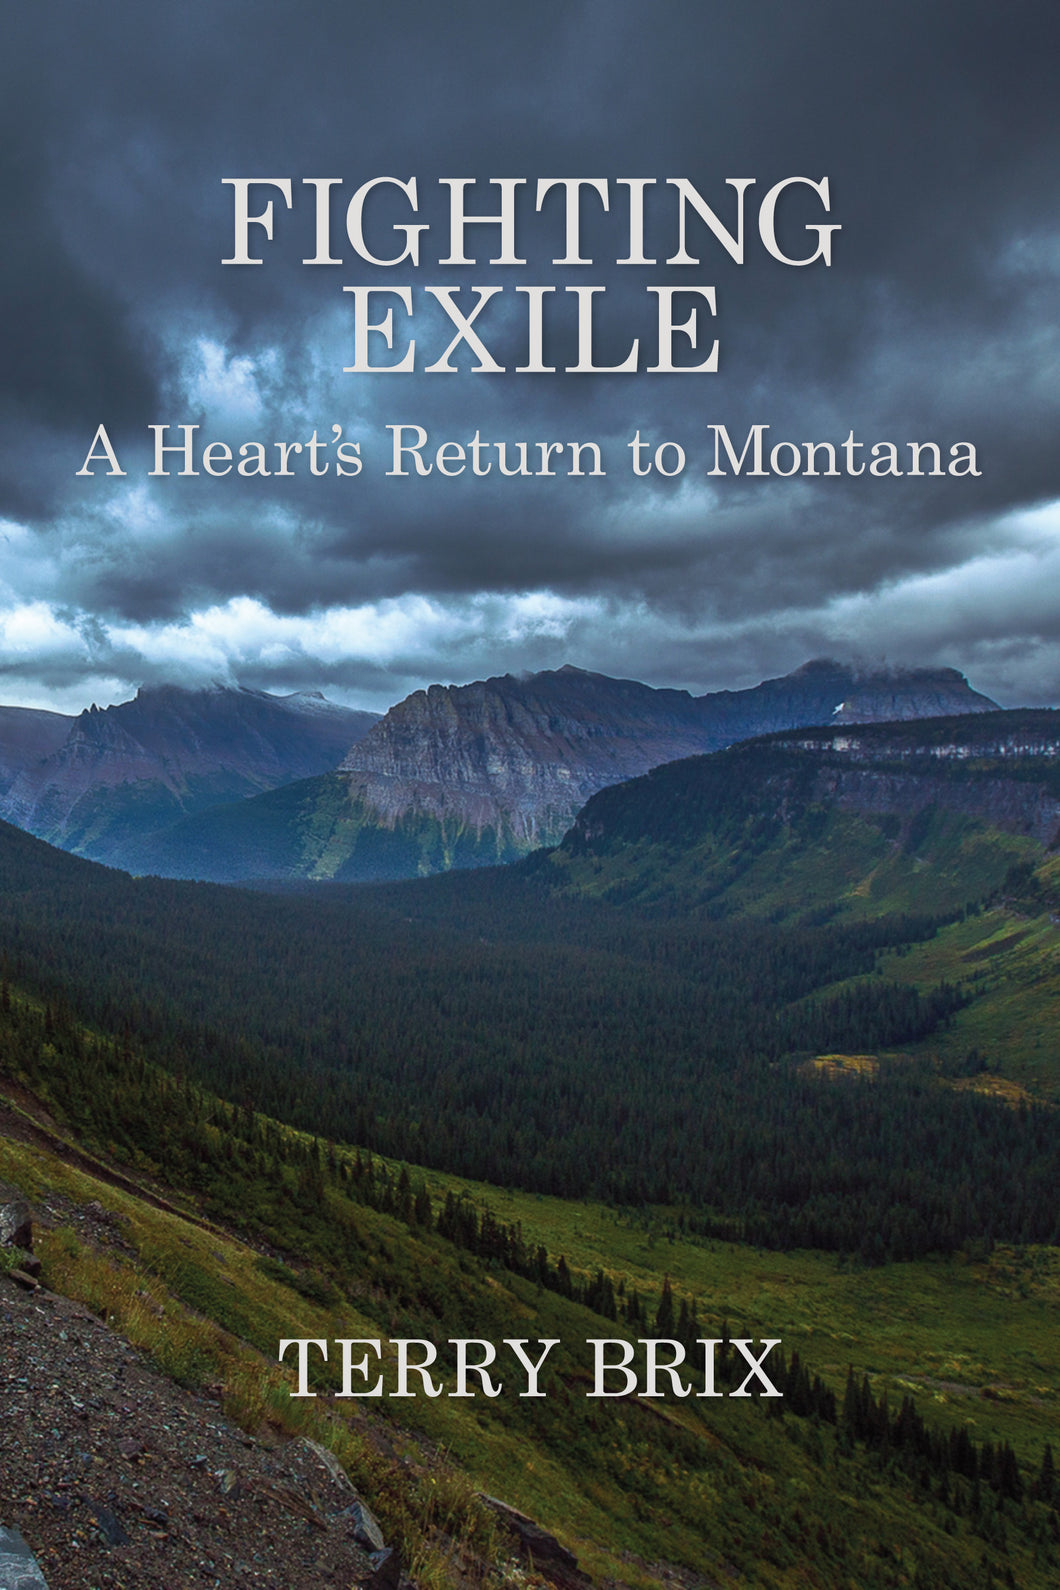 Fighting Exile: A Heart's Return to Montana